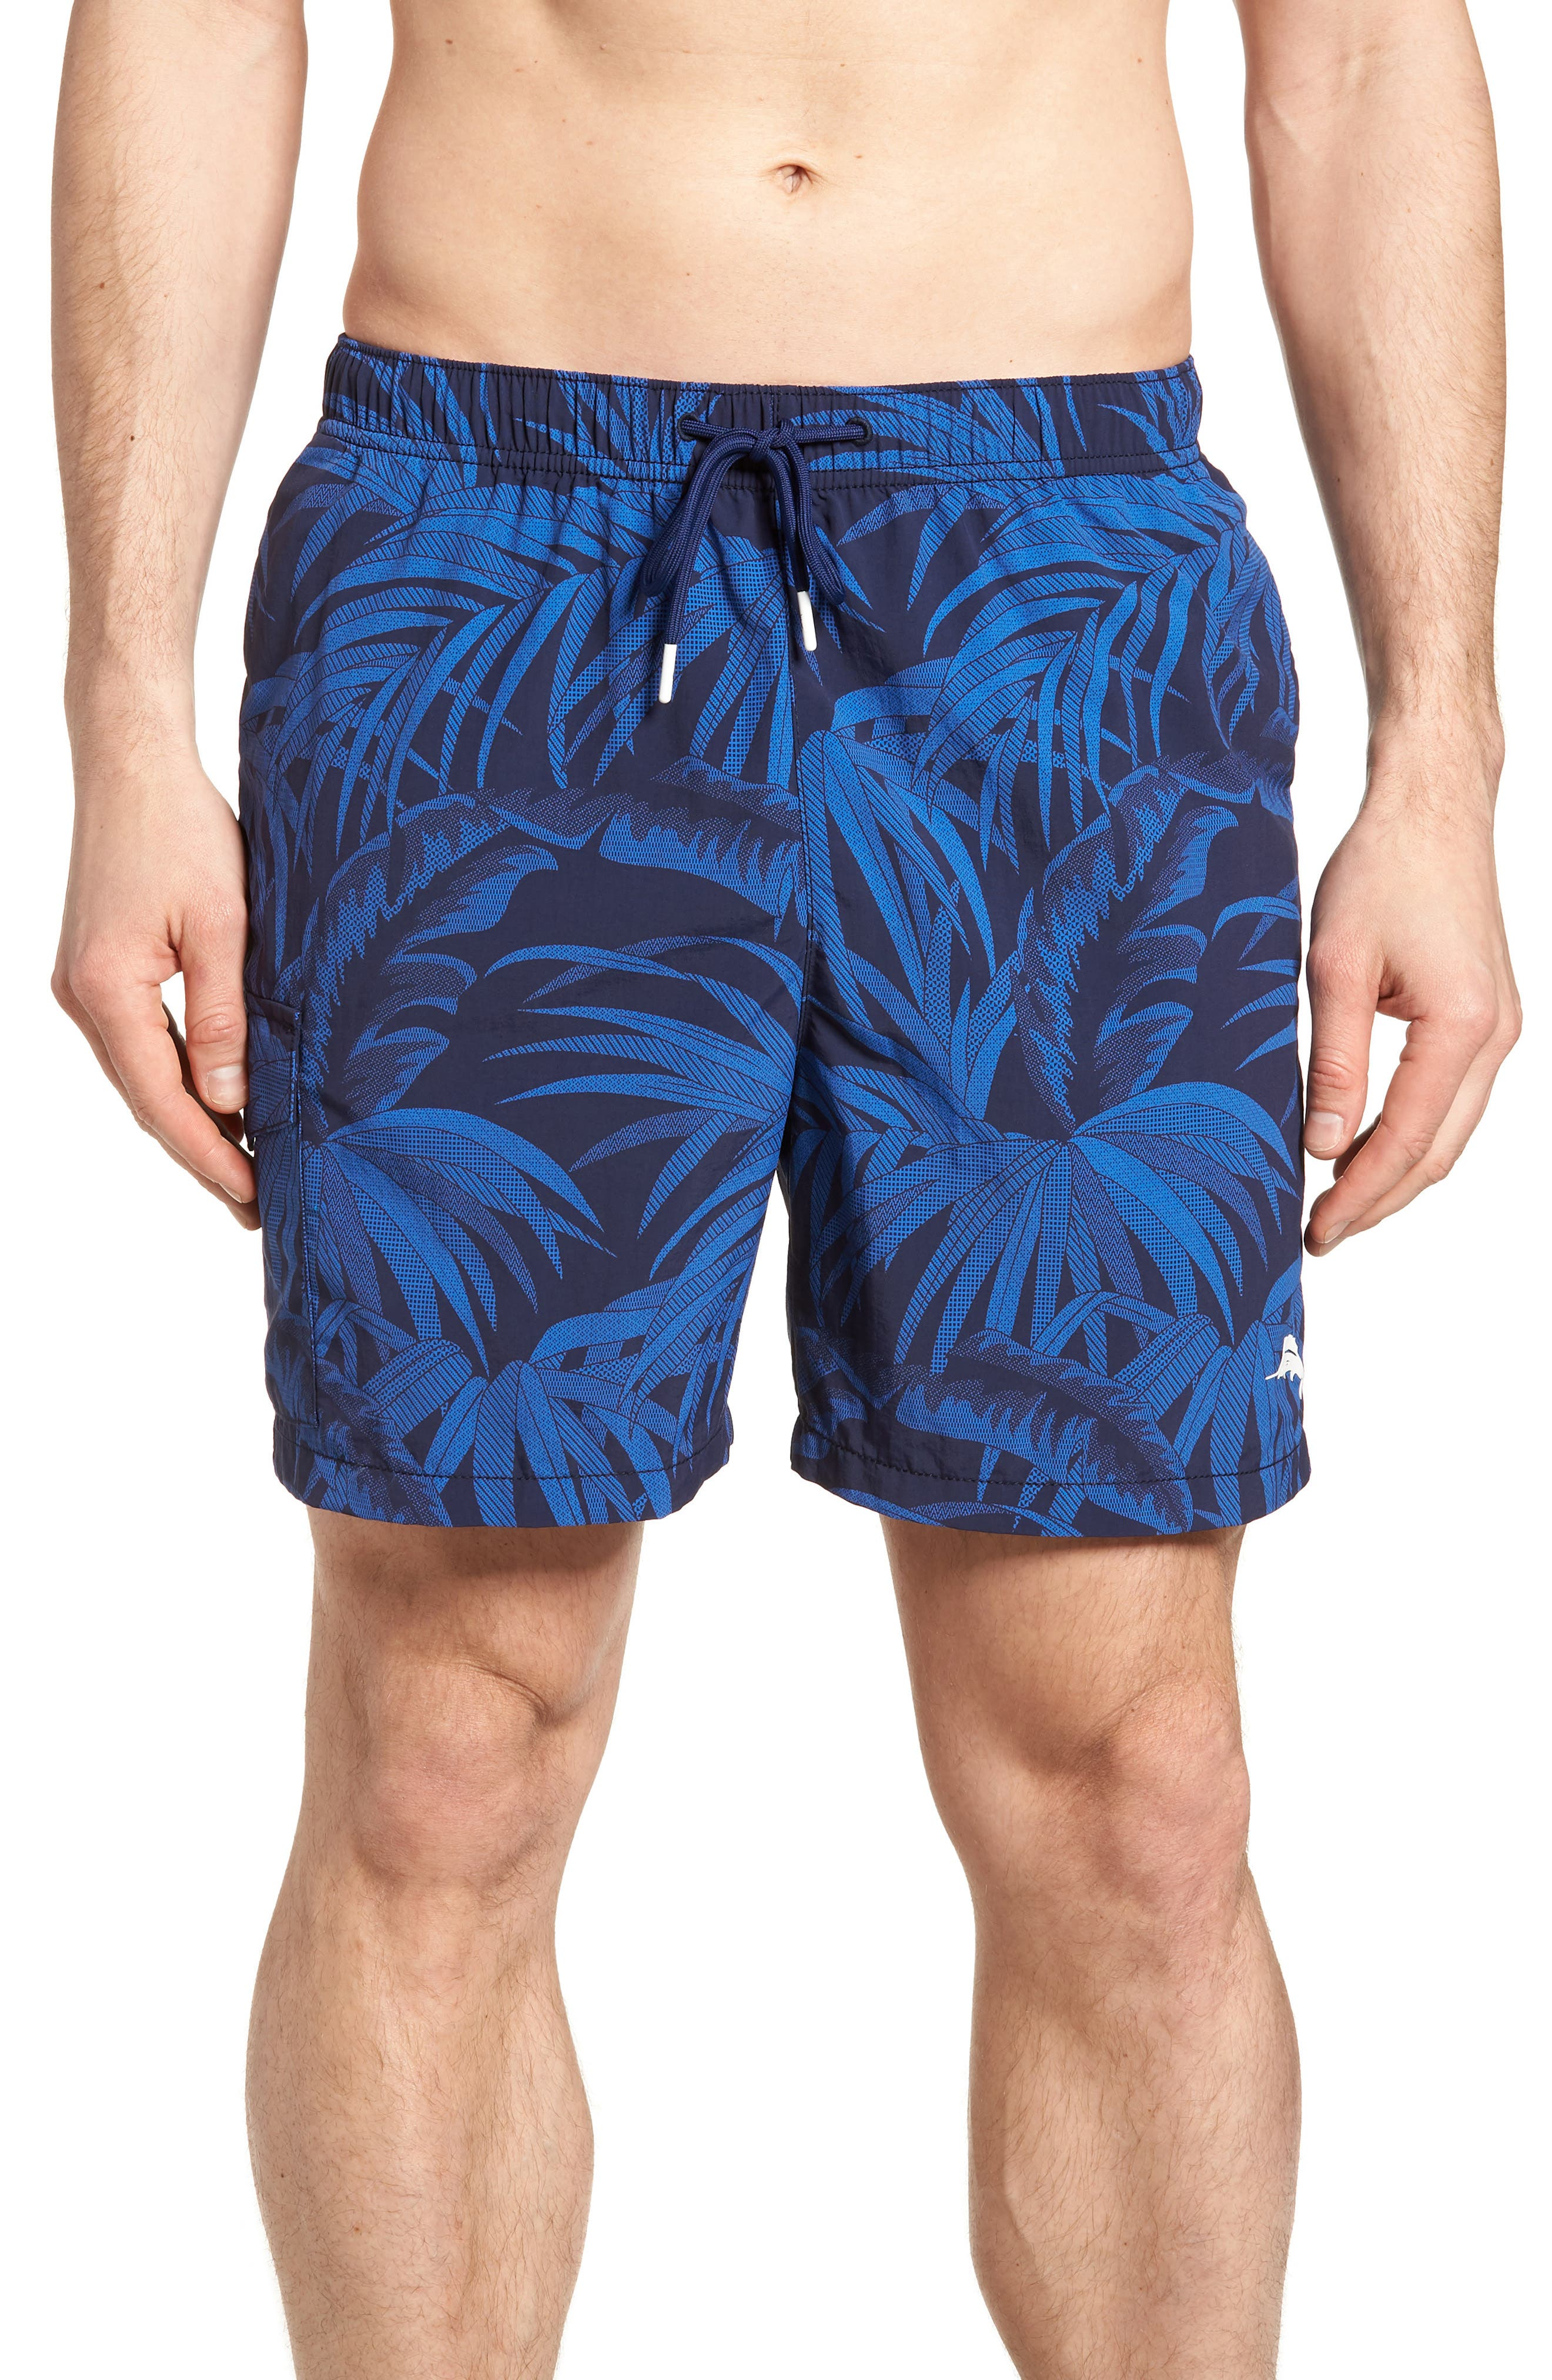 Naples Midnight Flora Swim Trunks,                         Main,                         color, 400